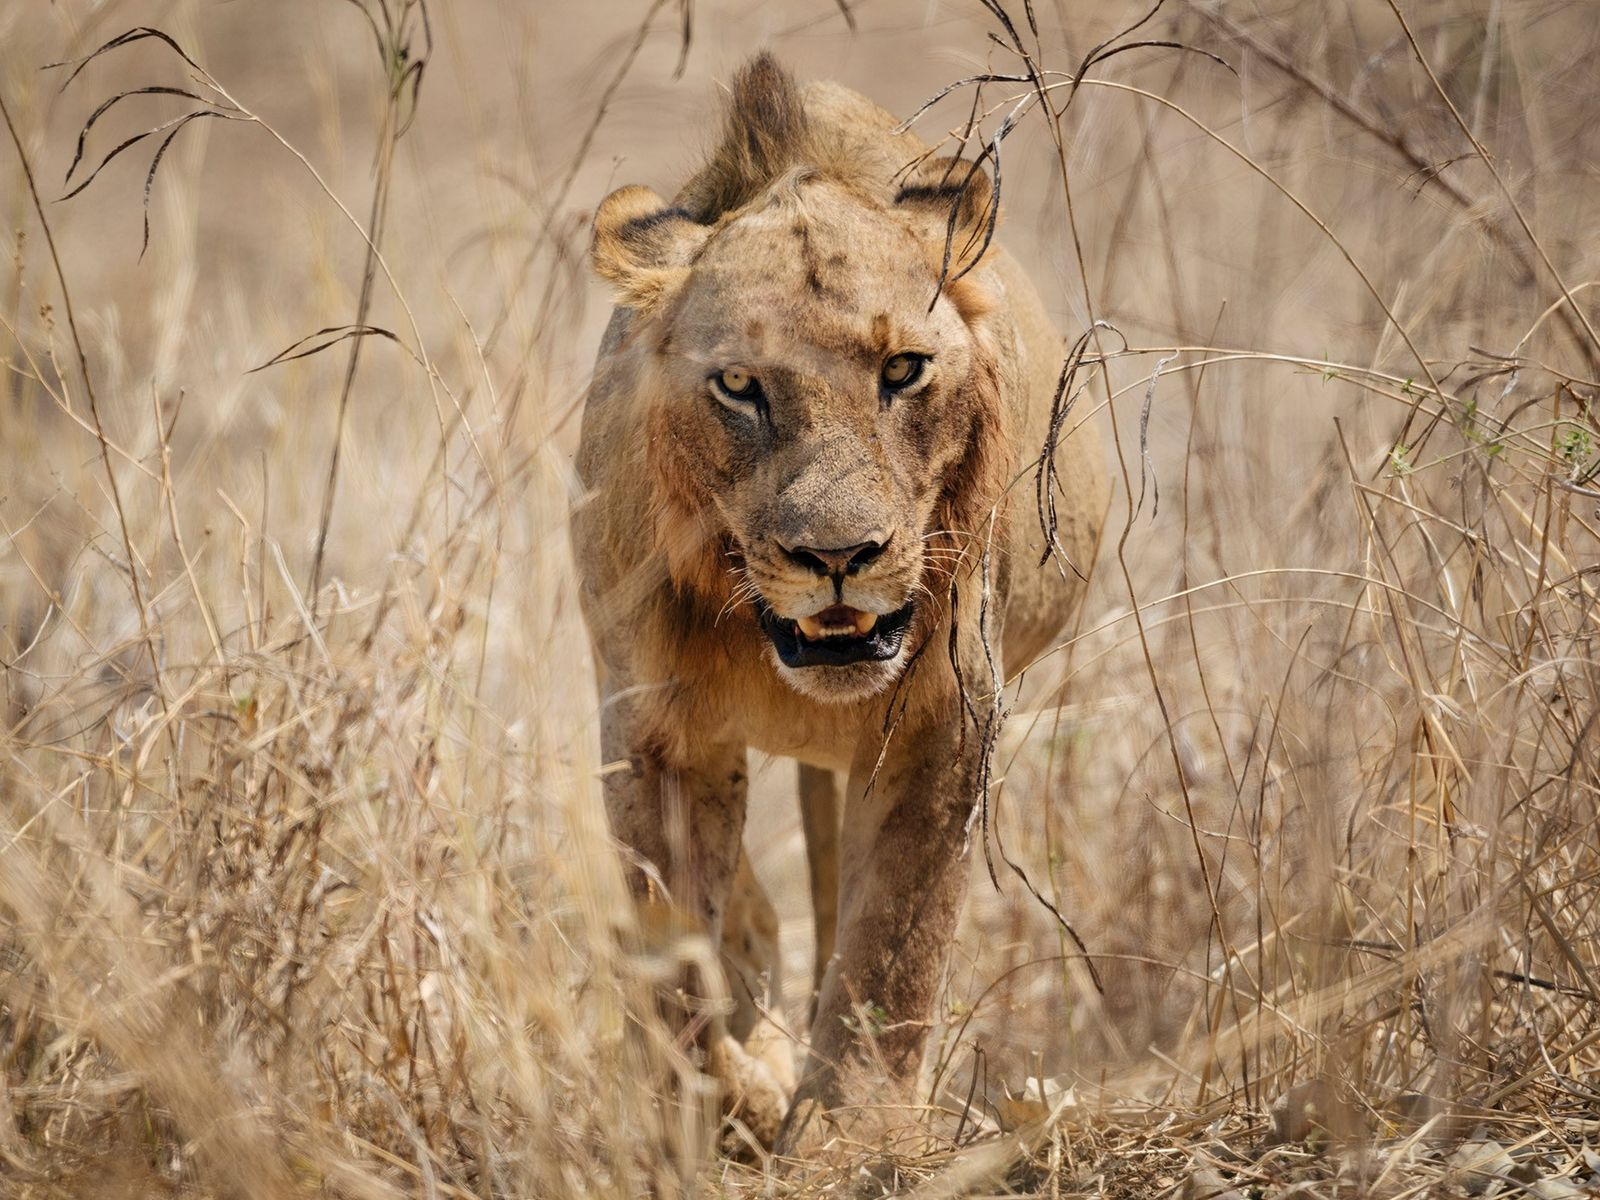 A male lion prowls through the grass in Zambia's South Luangwa National Park.